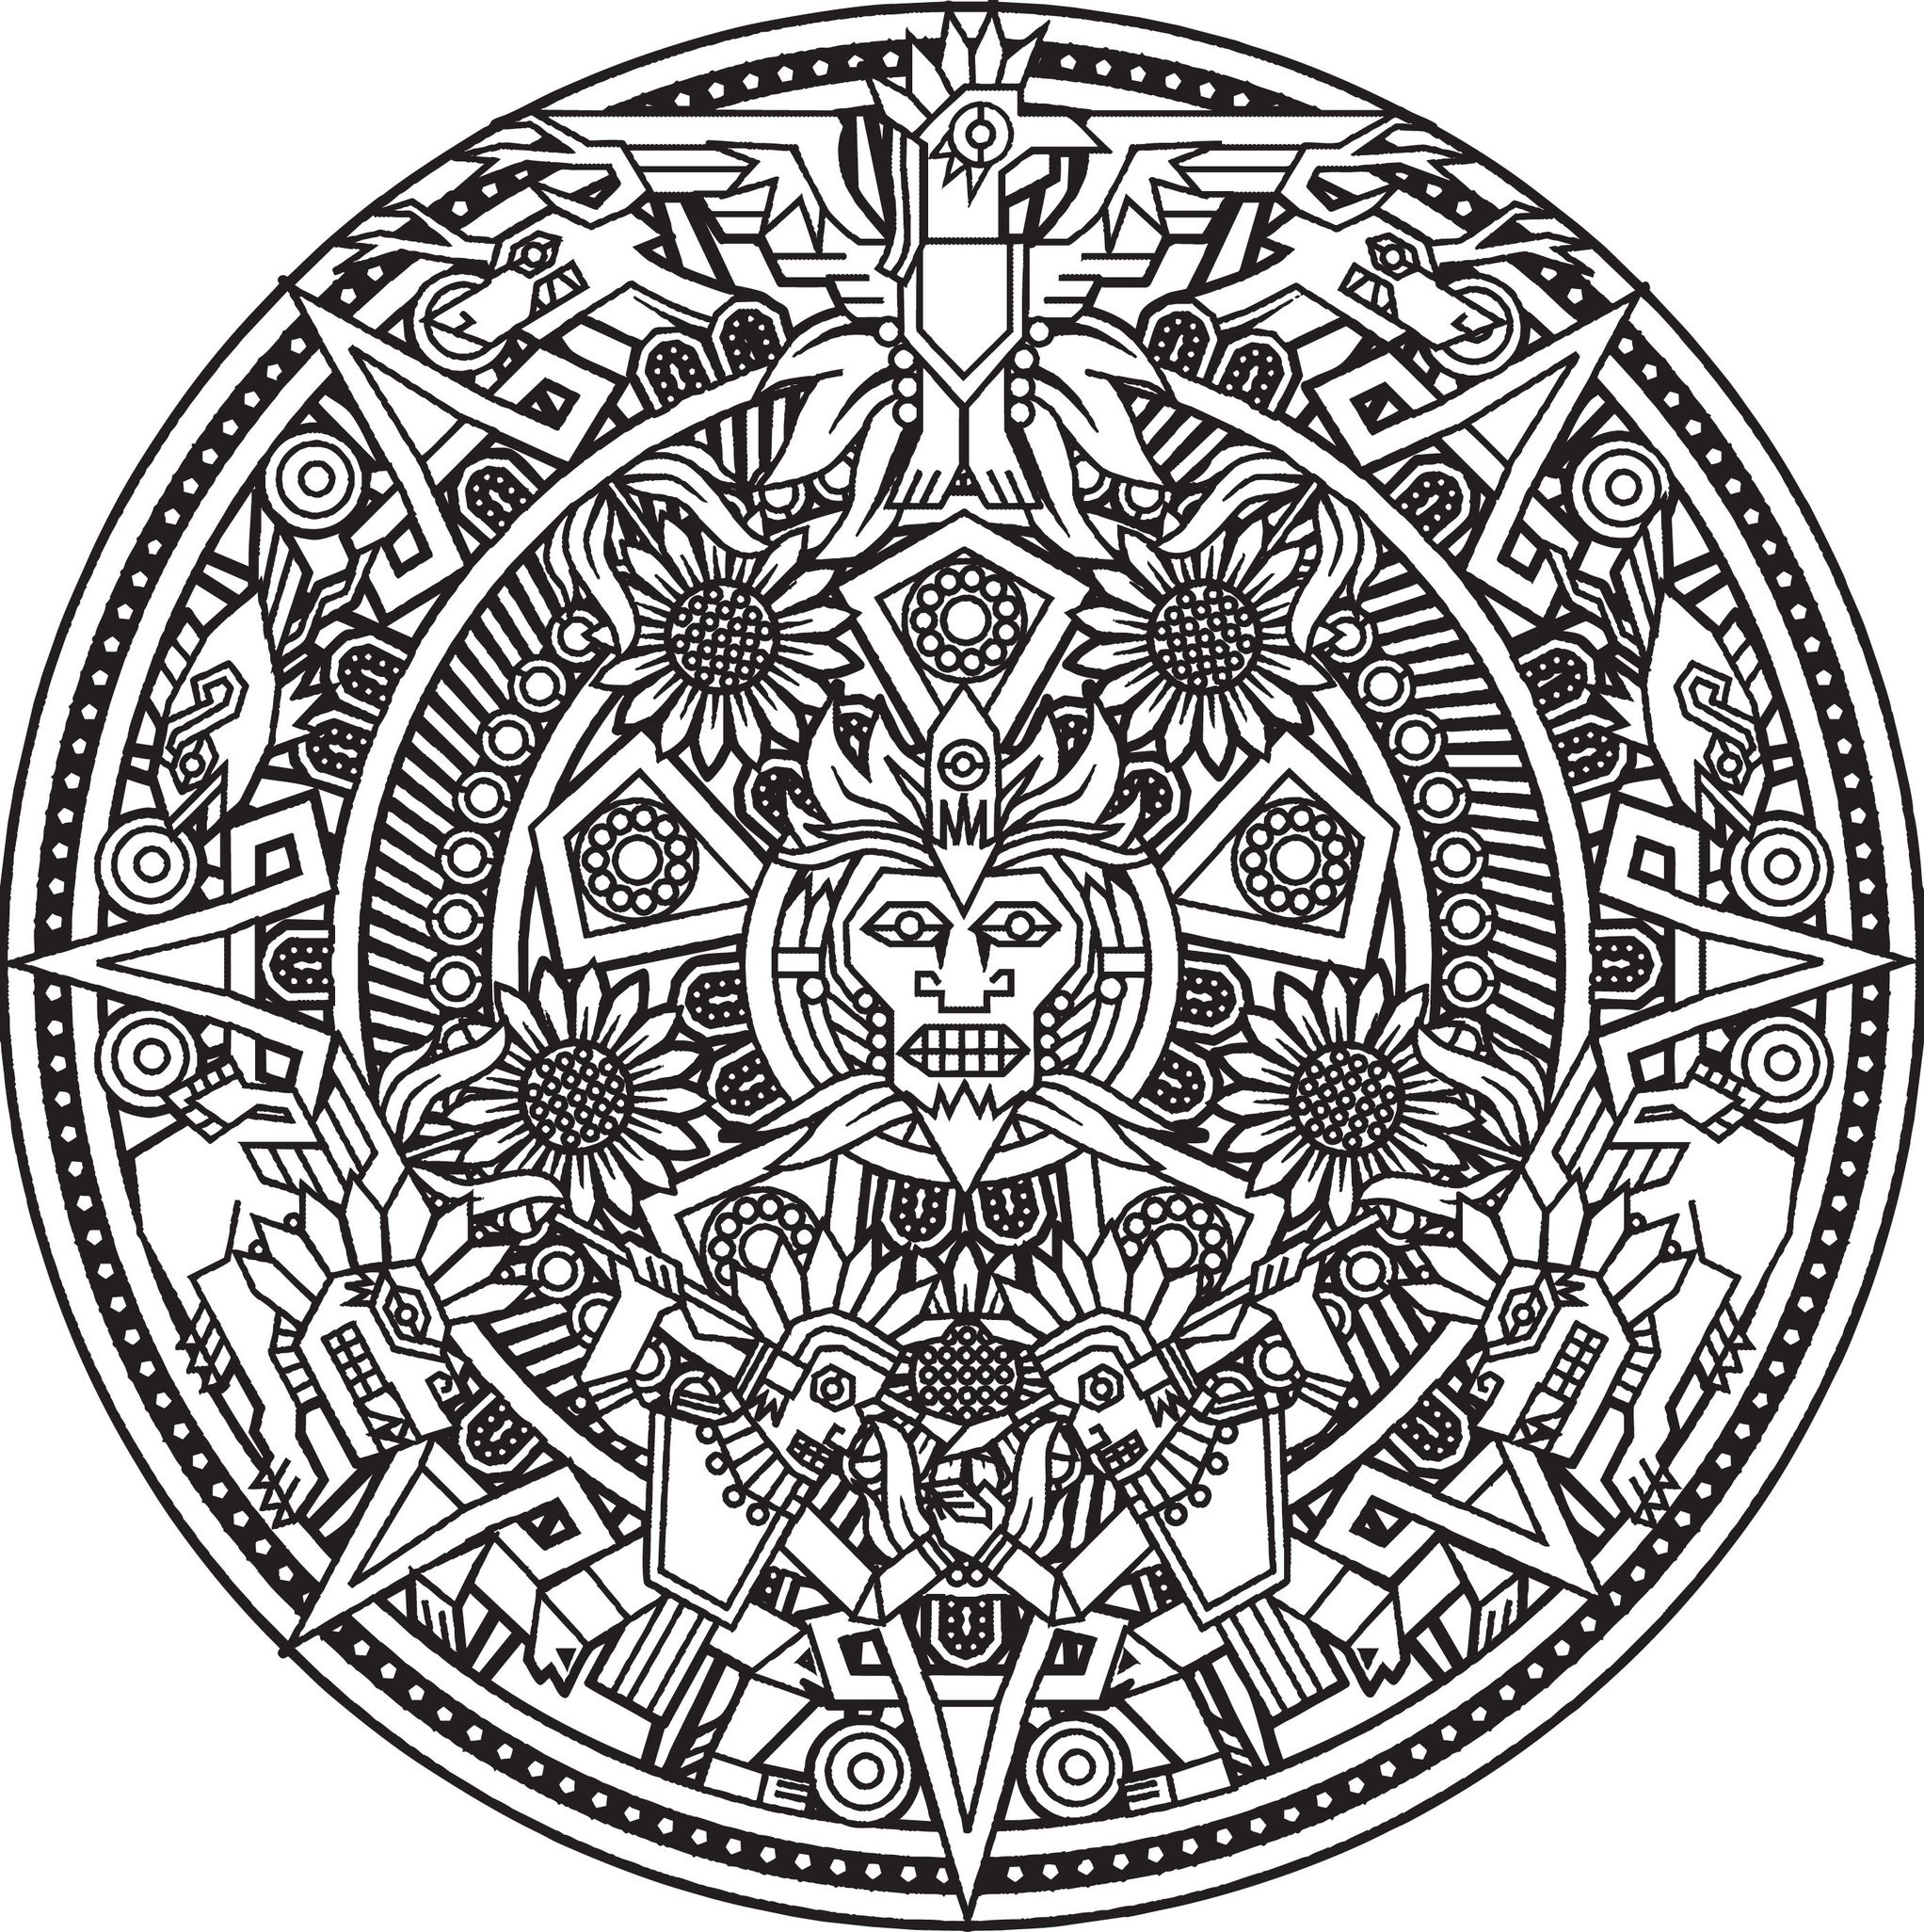 Hard mandala coloring pages for adults - Inca Or Maya God Mandala To Color By